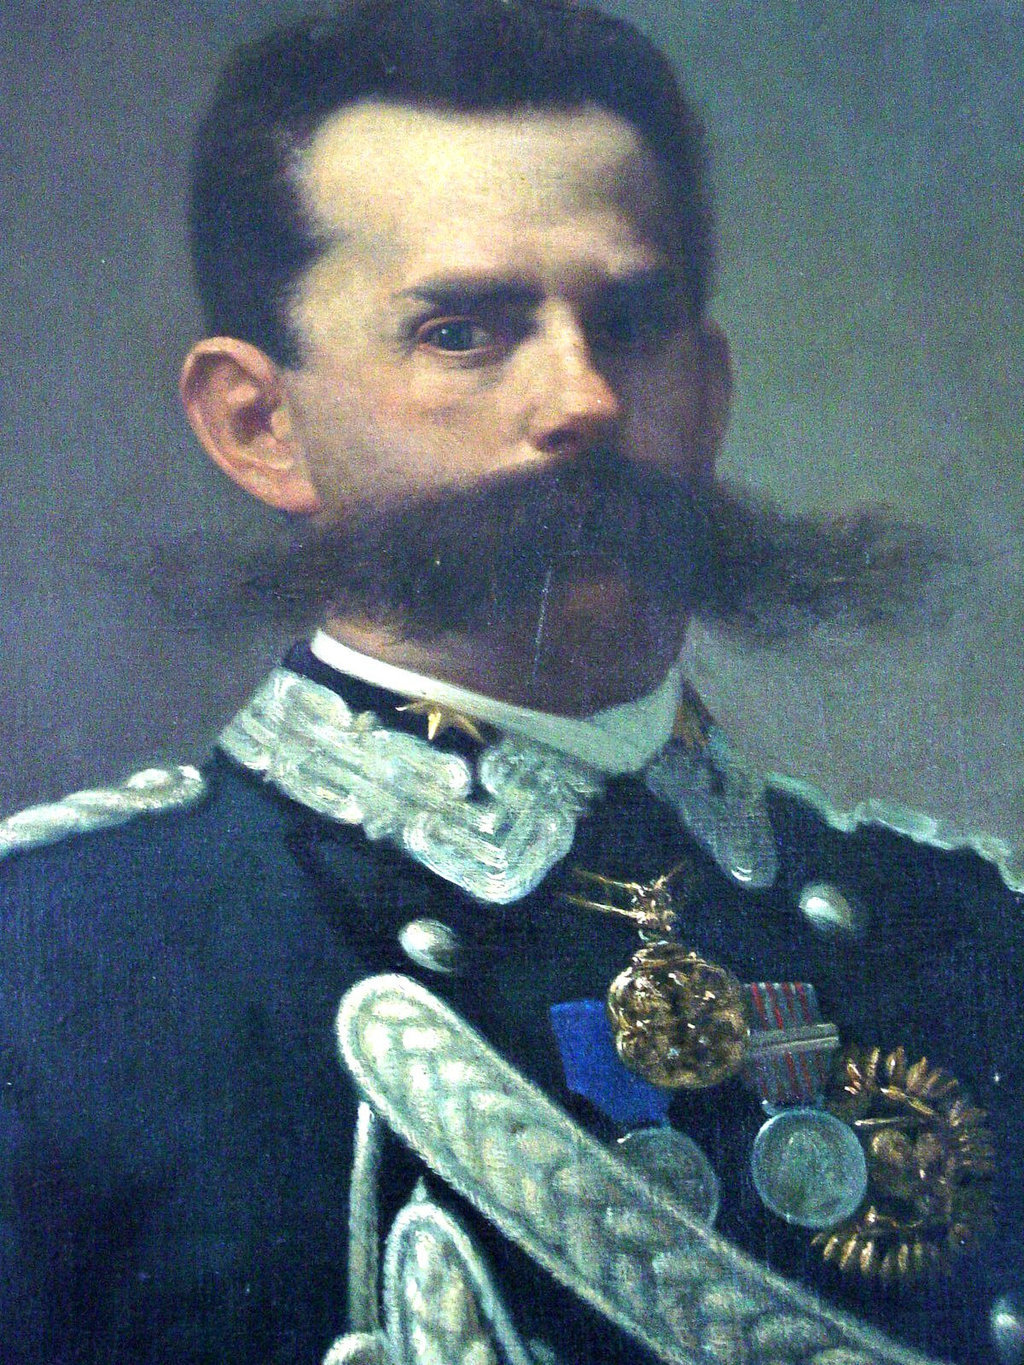 King Umberto I and his Mighty Mustache I posted this for the mustache however my readers may also be interested in this curious story about Umberto…  In Monza, Italy, King Umberto I, went to a small restaurant for dinner, accompanied by his aide-de-camp, General Emilio Ponzia- Vaglia. When the owner took King Umberto's order, the King noticed that he and the restaurant owner were virtual doubles, in face and in build. Both men began discussing the striking resemblances between each other and found many more similarities.a) Both men were born on the same day, of the same year, (March 14th, 1844).b) Both men had been born in the same town.c) Both men married a woman with same name, Margherita.d) The restauranteur opened his restaurant on the same day that King Umberto was crowned King of Italy.e) On the 29th July 1900, King Umberto was informed that the restauranteur had died that day in a mysterious shooting accident, and as he expressed his regret, he was then assassinated by an anarchist in the crowd. [Source]  Make of that what you will.